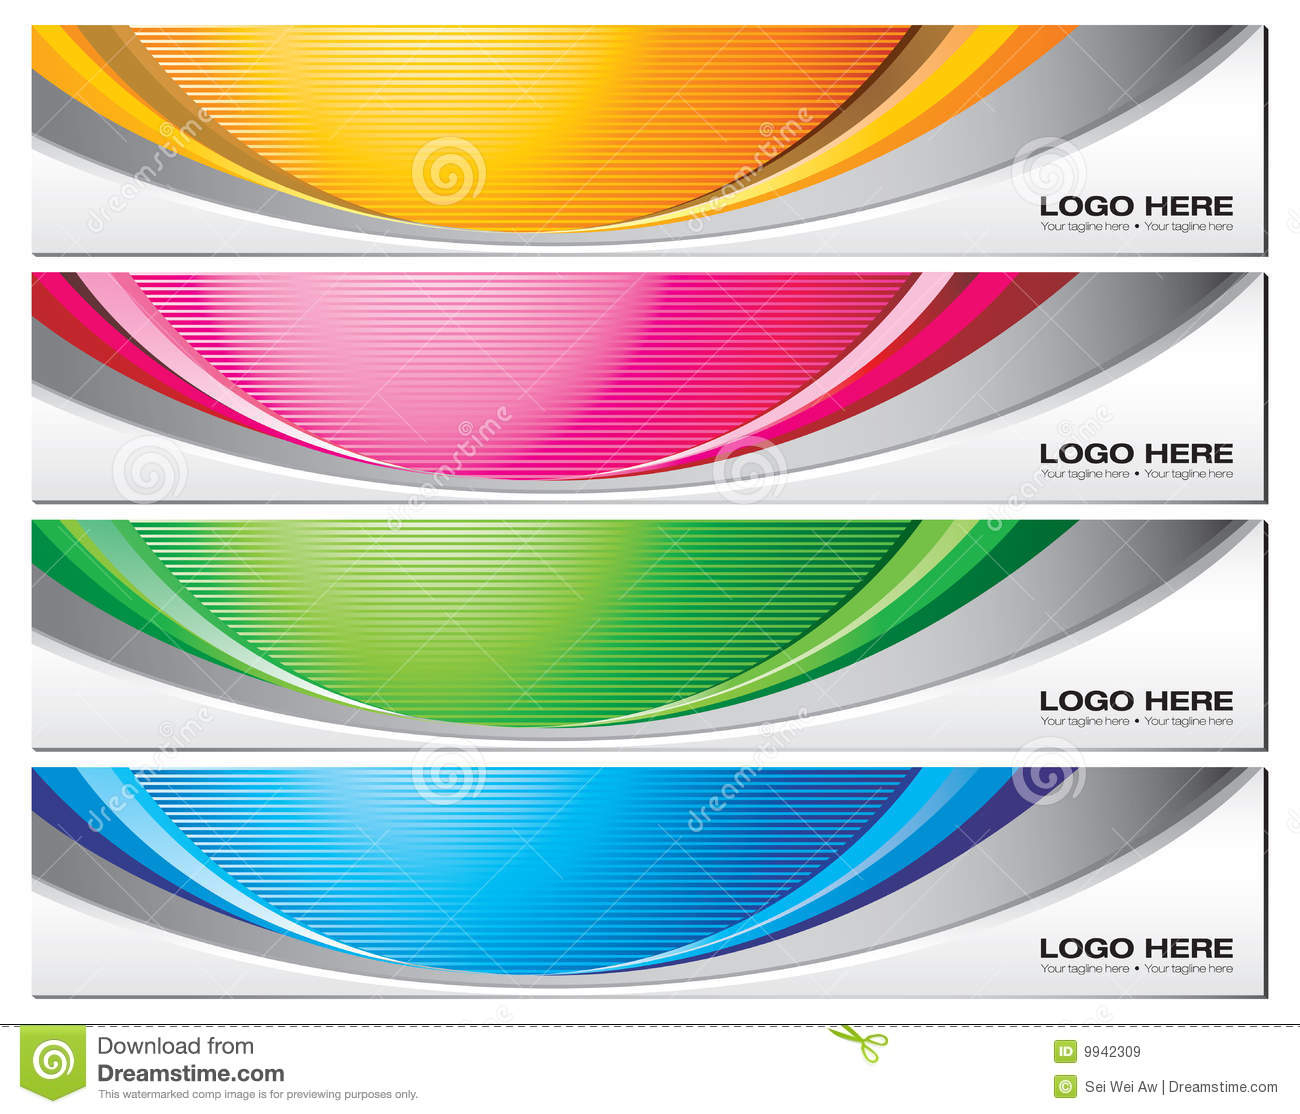 Banner Templates Stock Vector. Illustration Of Vector - 9942309 Throughout Free Website Banner Templates Download